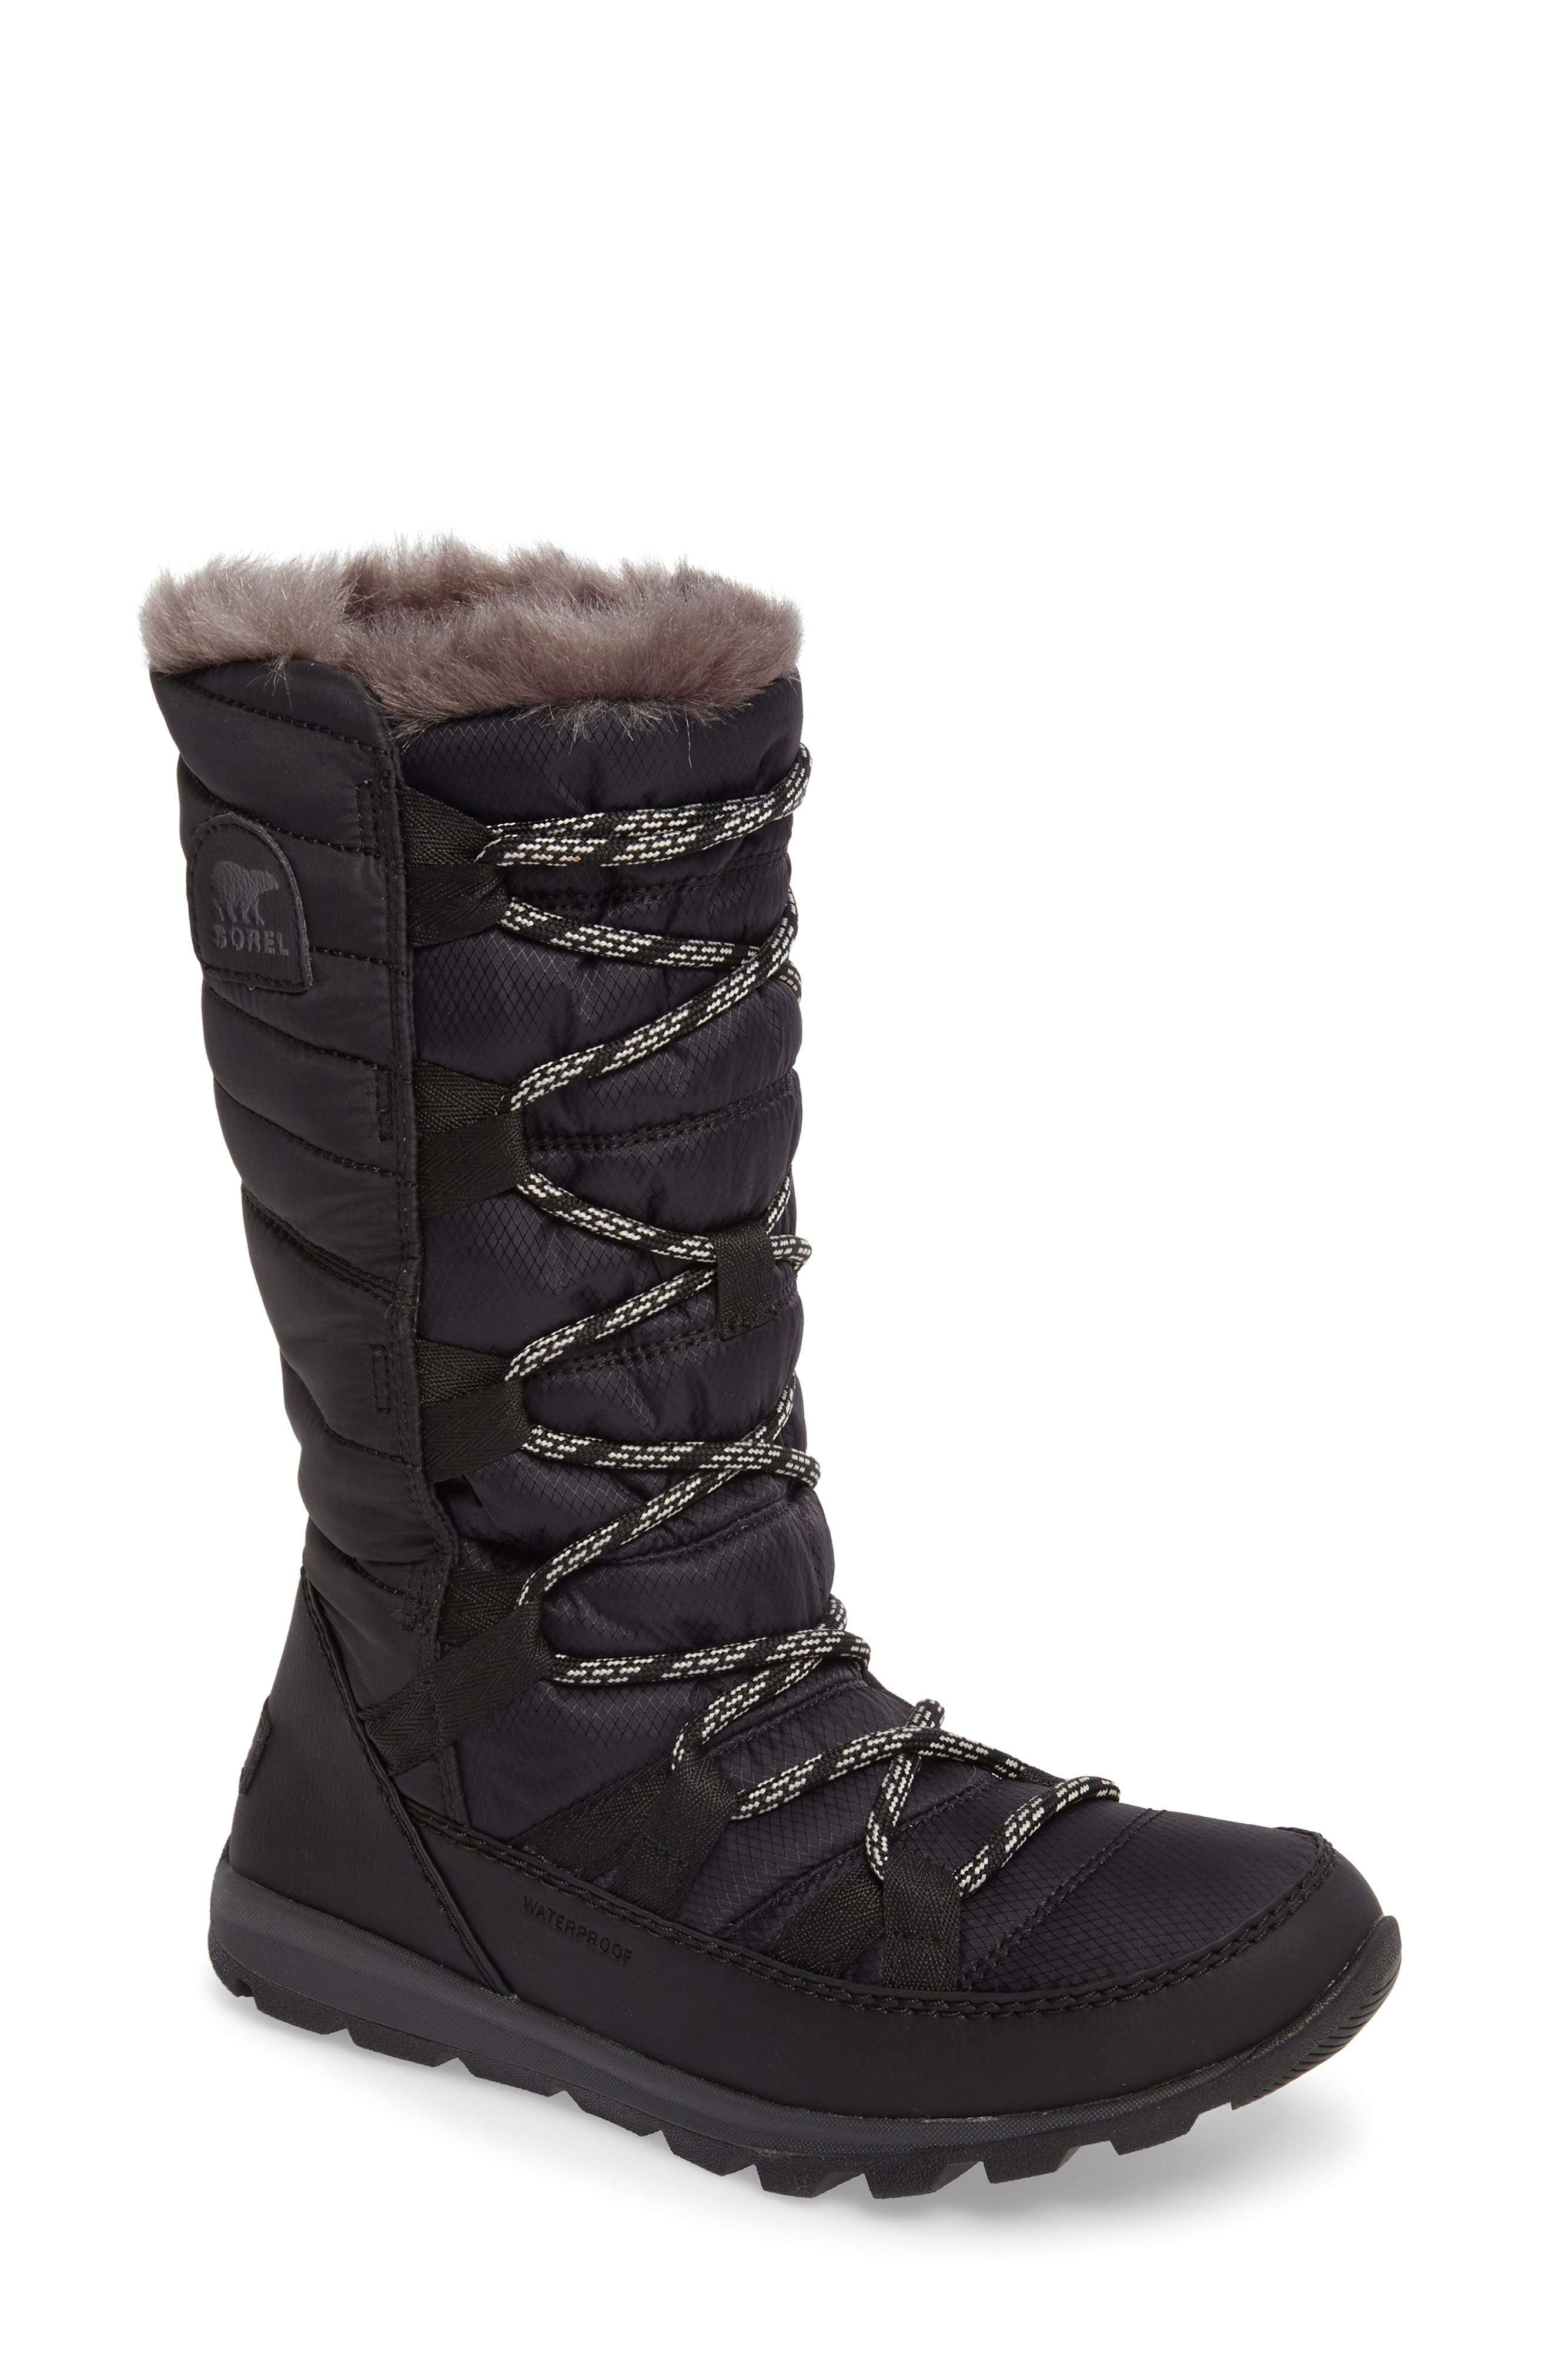 Whitney Snow Boot,                         Main,                         color,